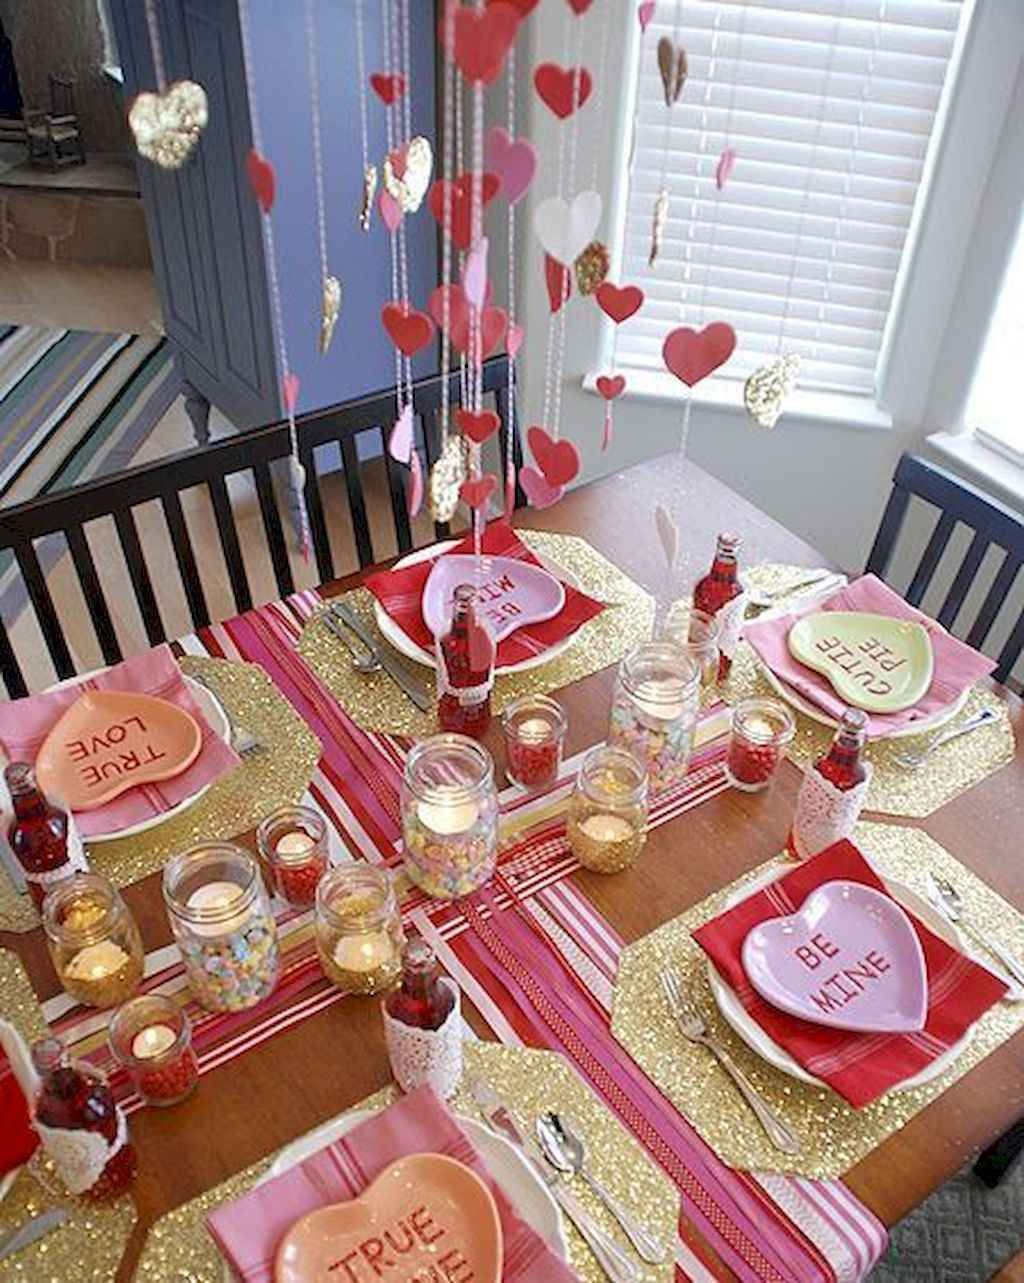 39+ Farmhouse Décor Ideas for Valentine's Day in 2020